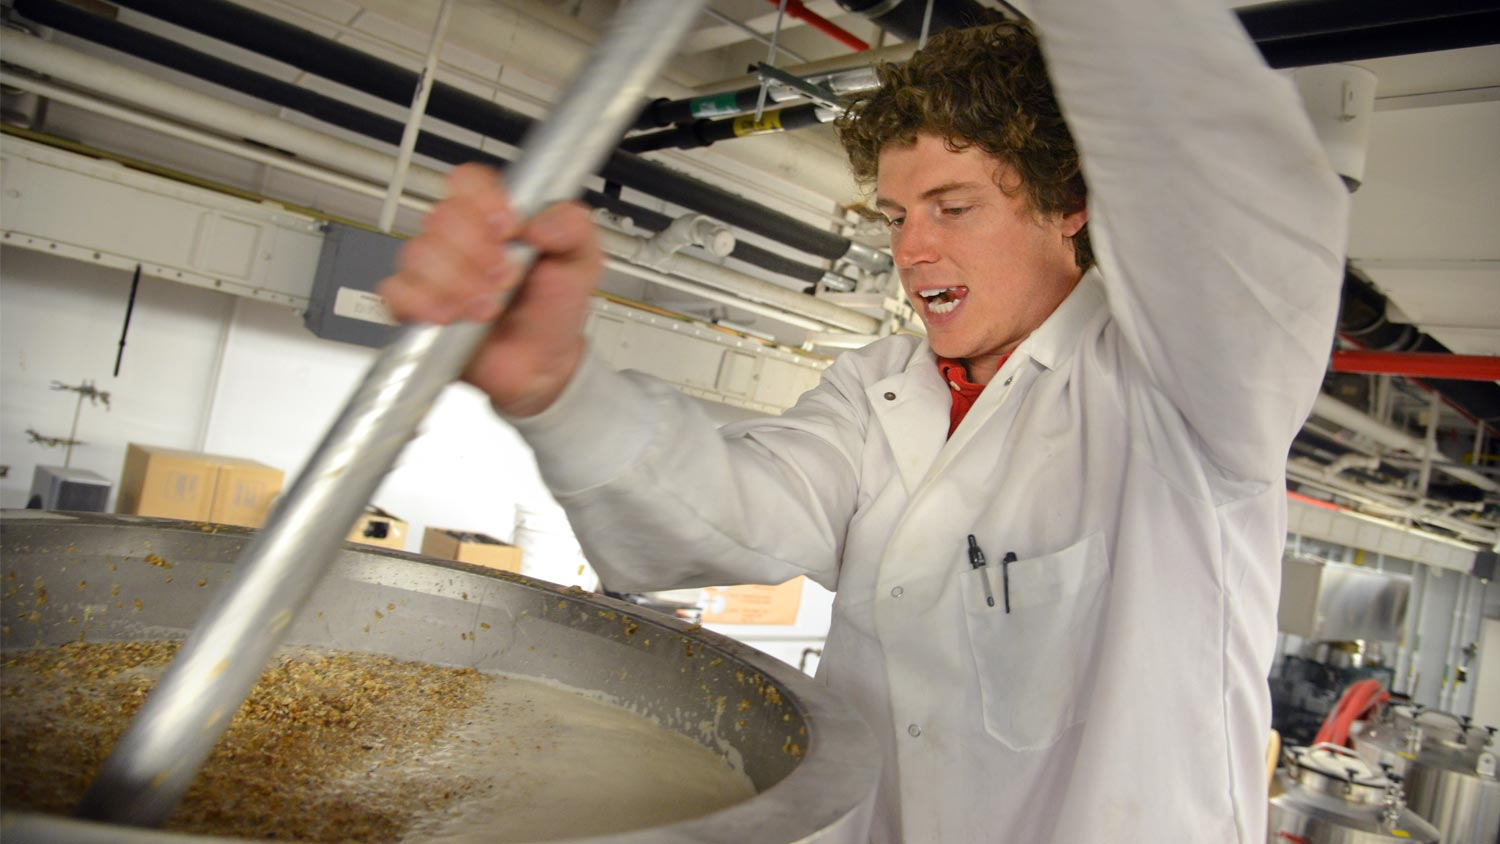 An NCState brewer working in the brewery.